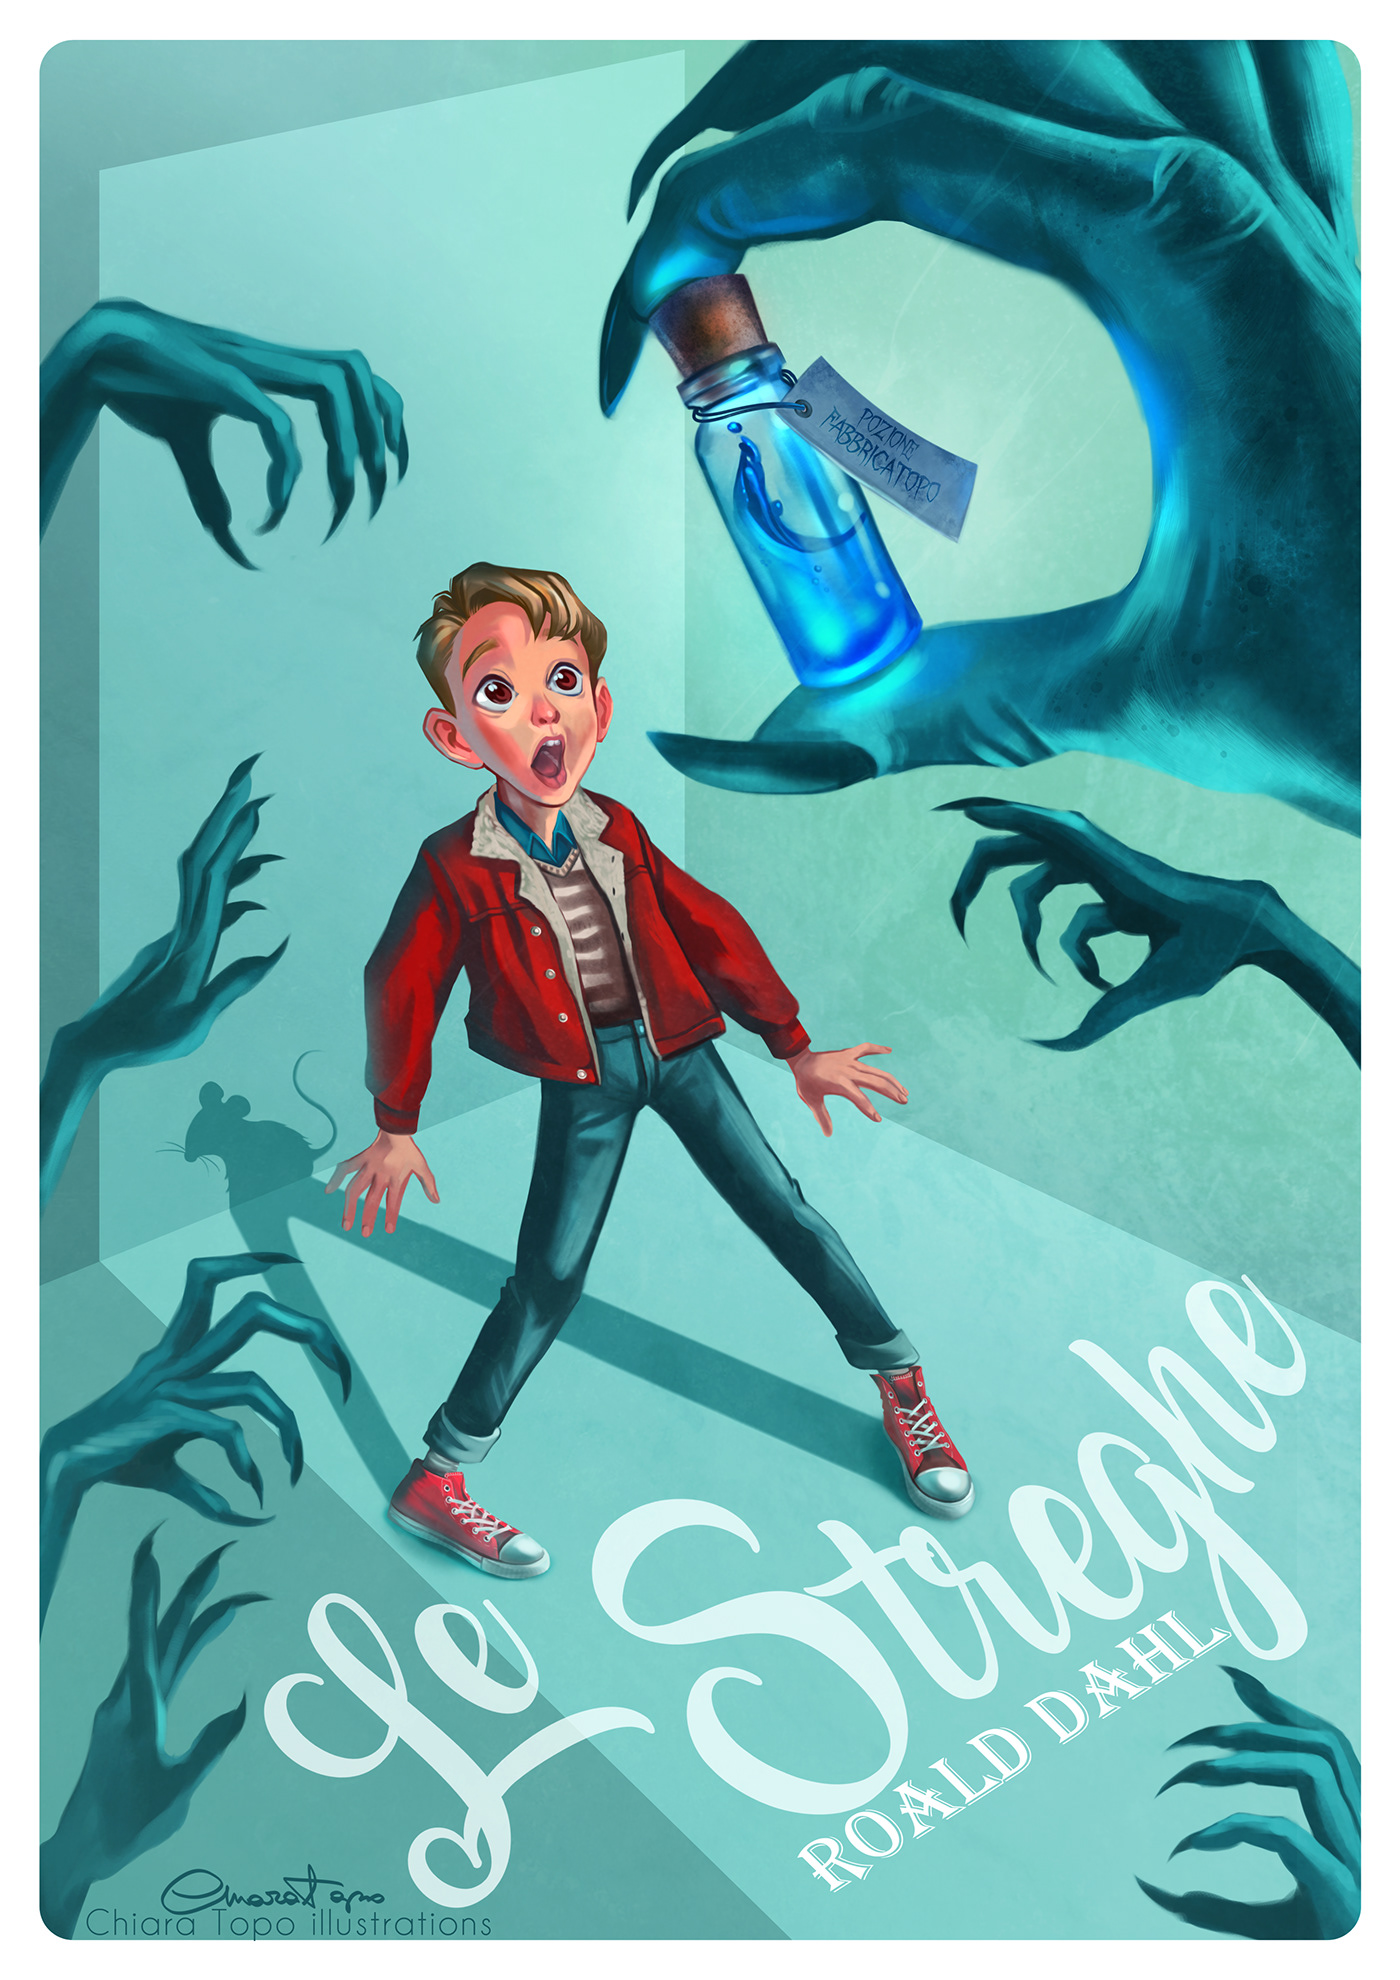 The Witches By Roald Dahl Cover Remake On Behance